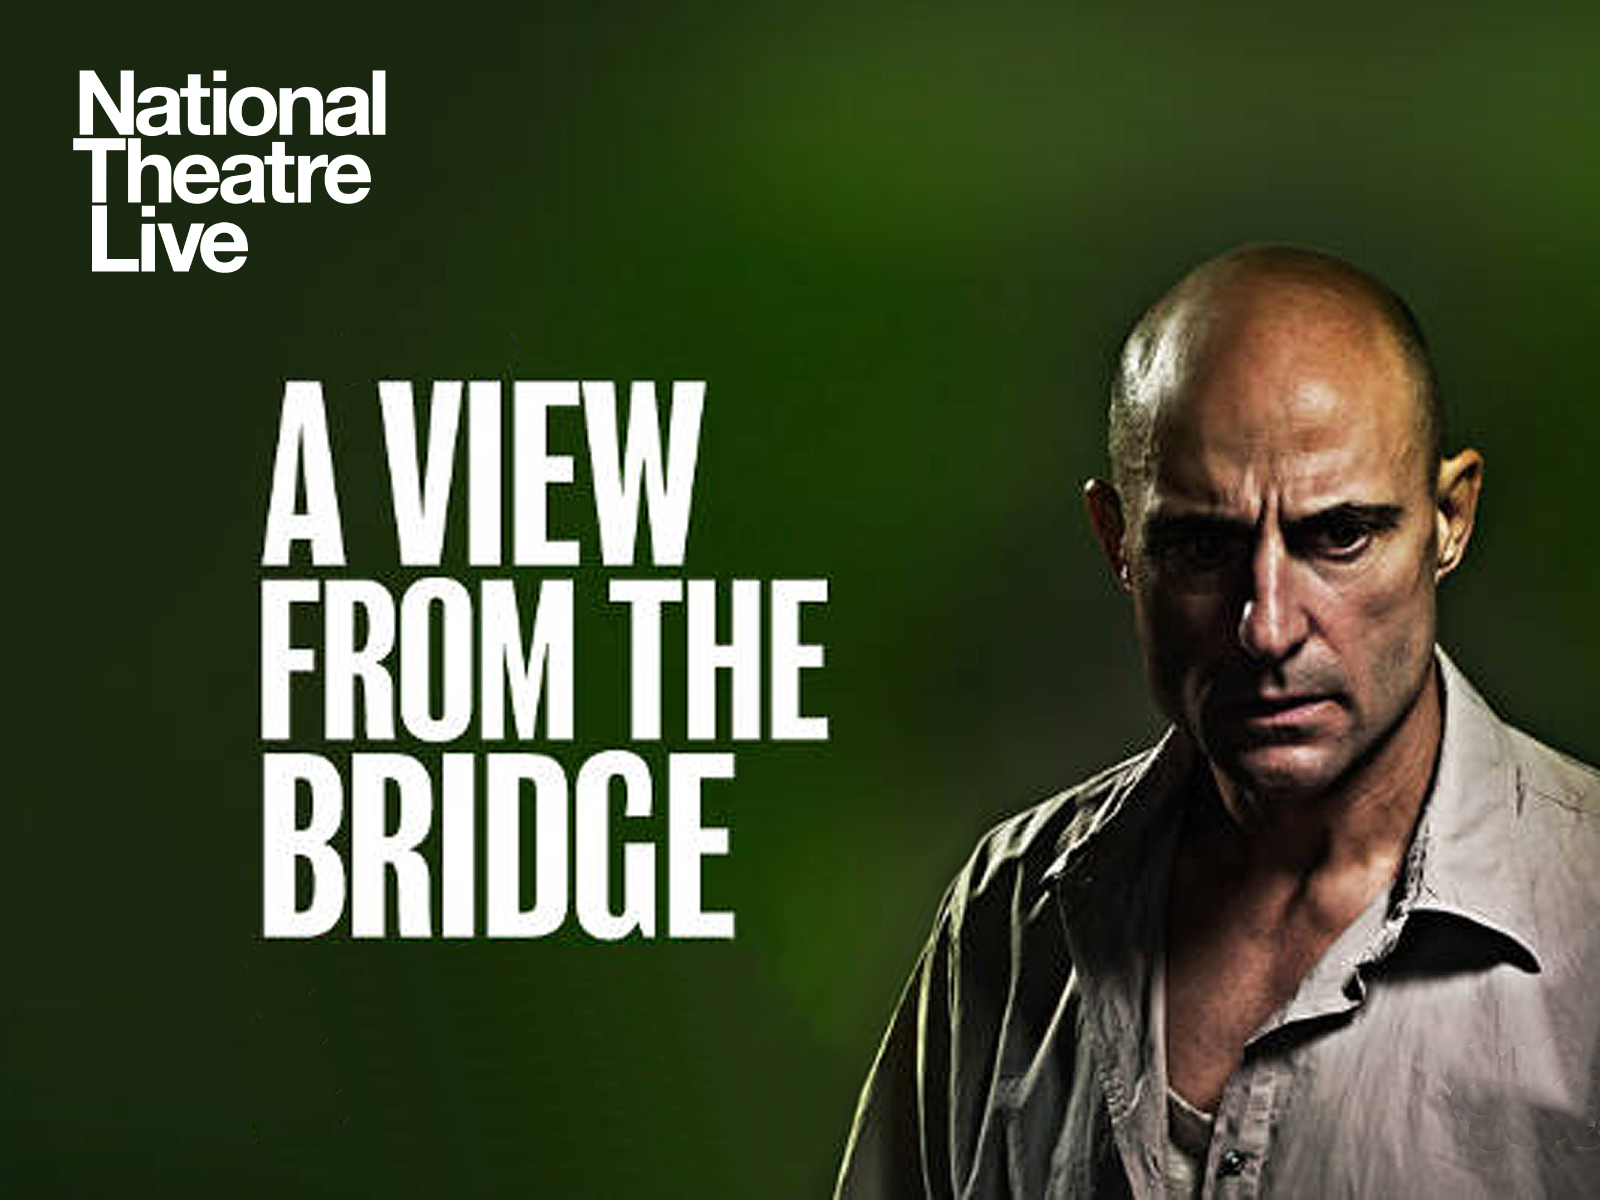 Following its smash-hit original broadcast, the Young Vic's 'magnetic, electrifying, astonishingly bold' production of A View from the Bridge returns to cinemas due to audience demand...